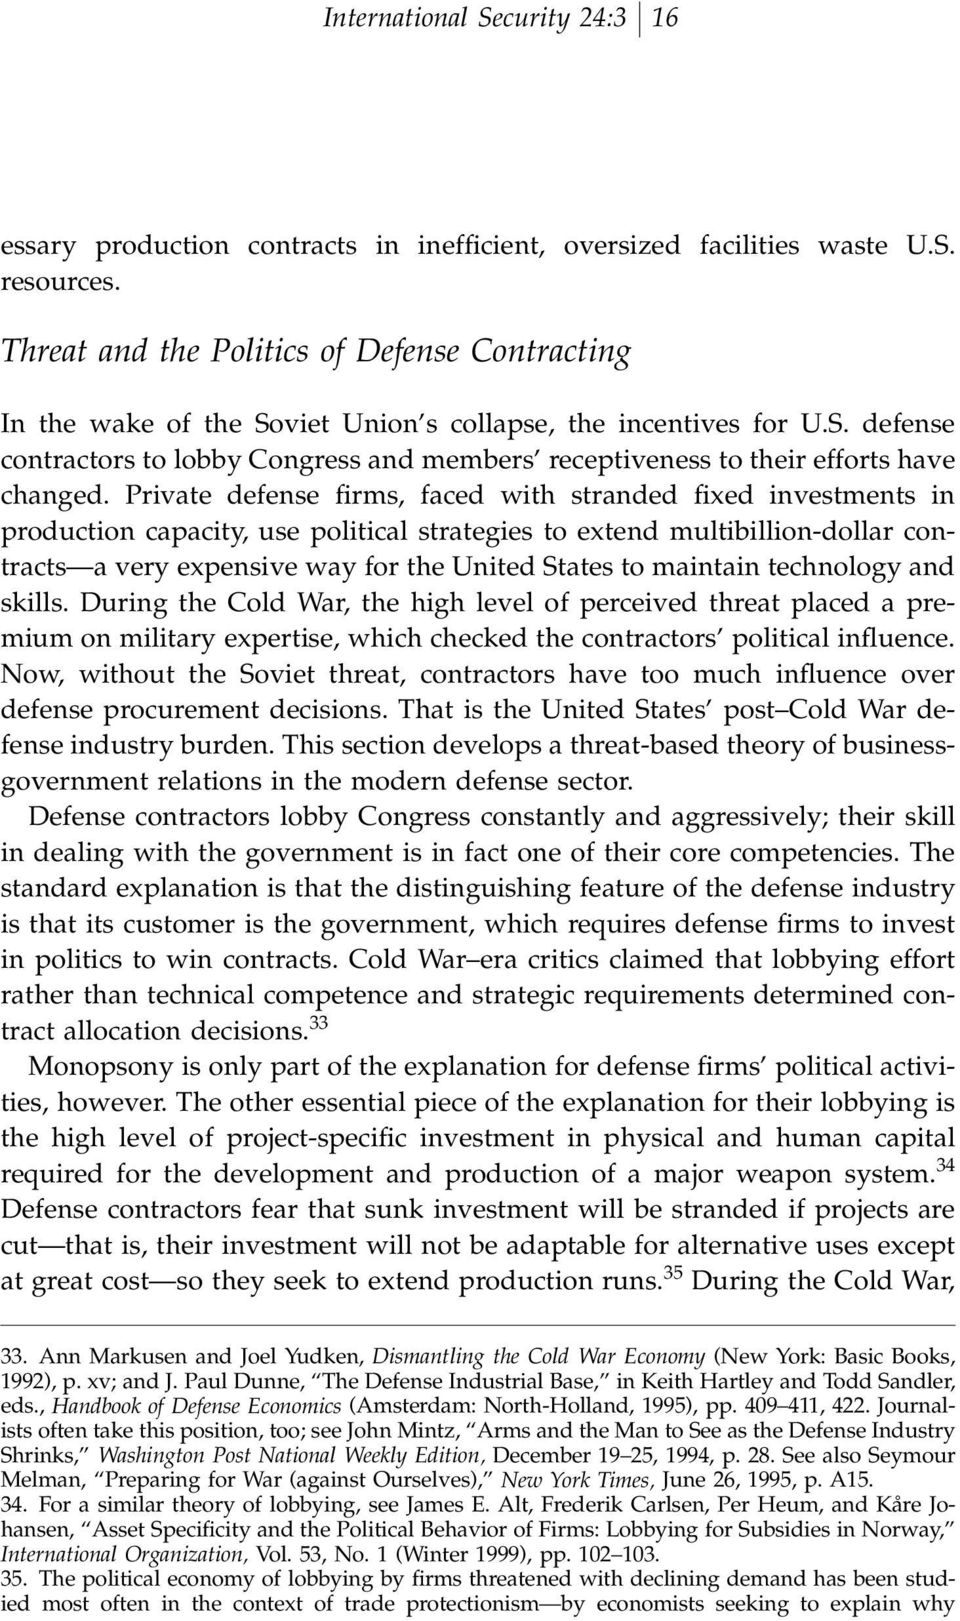 Private defense ªrms, faced with stranded ªxed investments in production capacity, use political strategies to extend multibillion-dollar contracts a very expensive way for the United States to